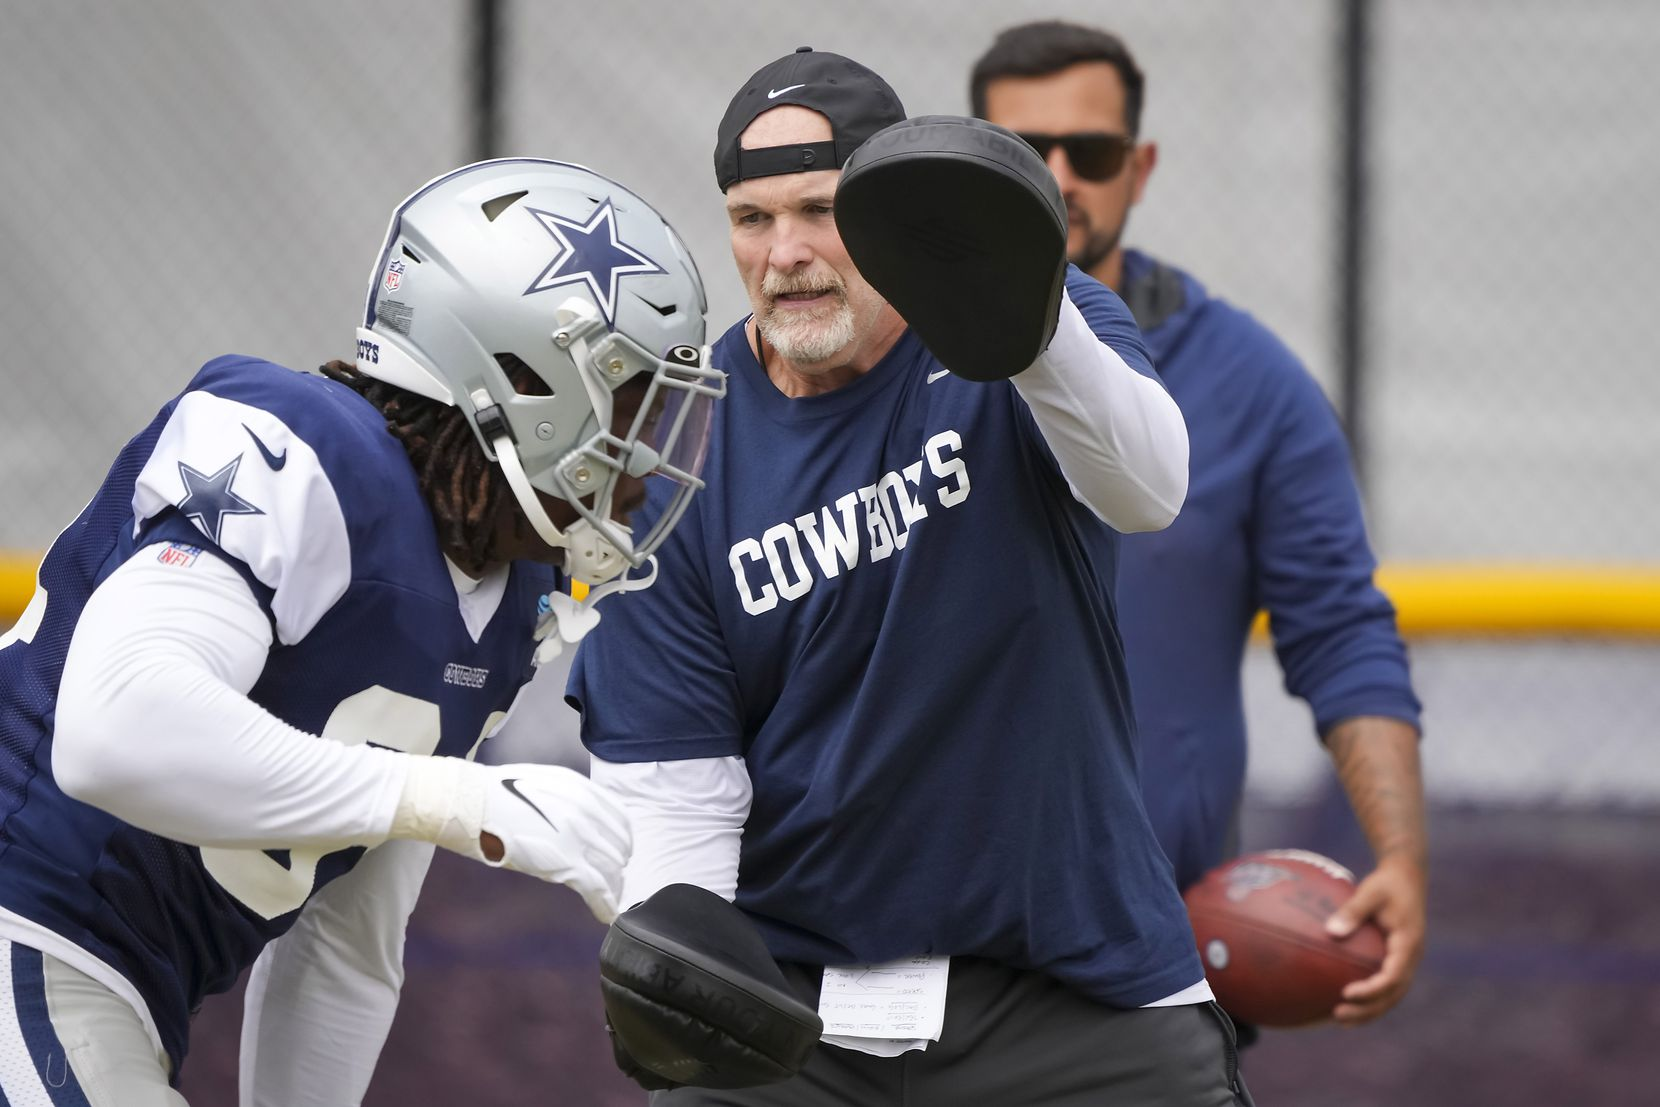 Dallas Cowboys defensive coordinator Dan Quinn works with defensive end Randy Gregory (94) during a practice at training camp on Saturday, July 31, 2021, in Oxnard, Calif.